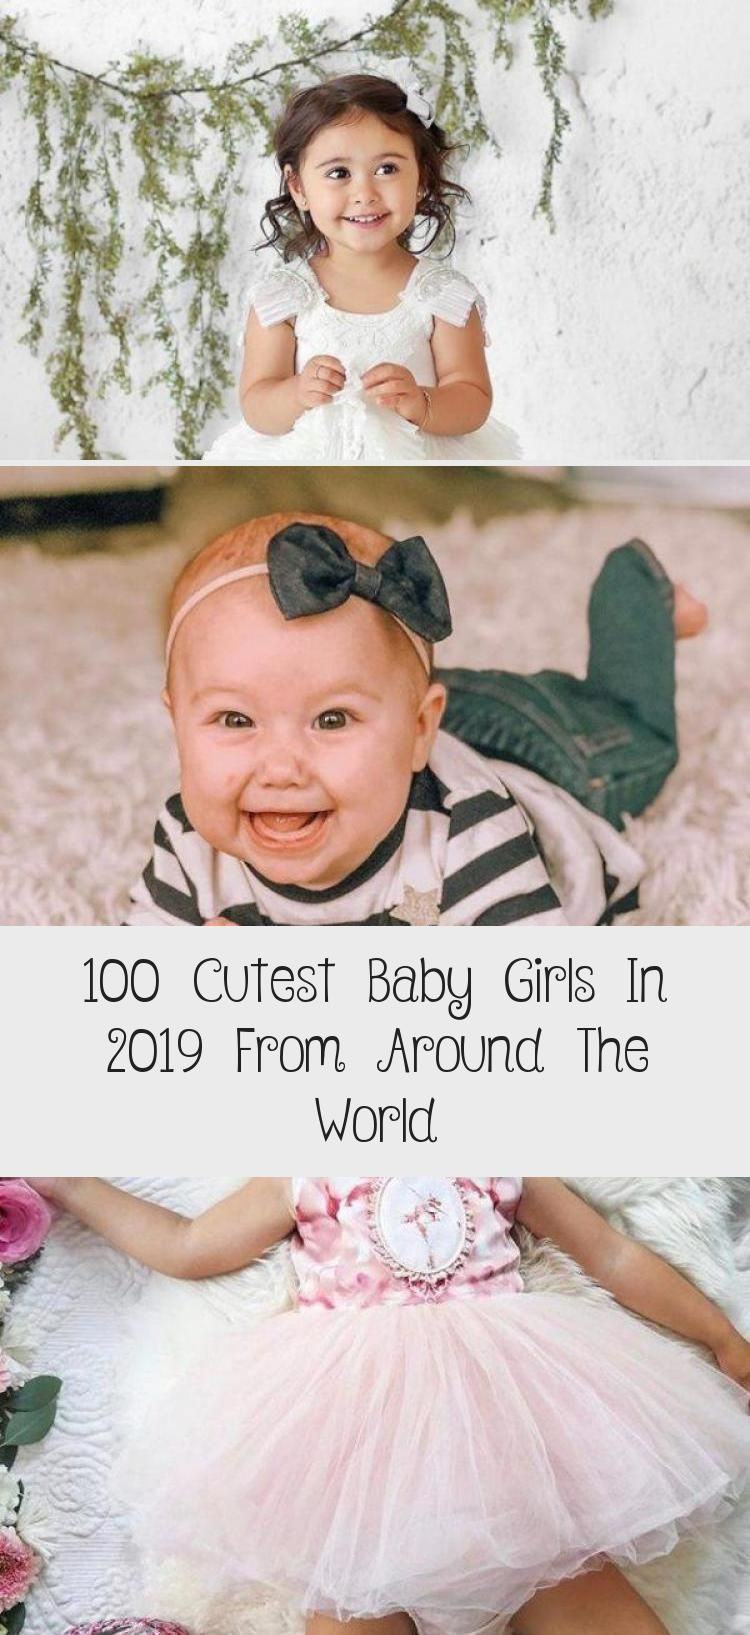 100 Cutest Baby Girls In 2019 From Around The World - health and diet fitness, #Baby #BabyClothingph...